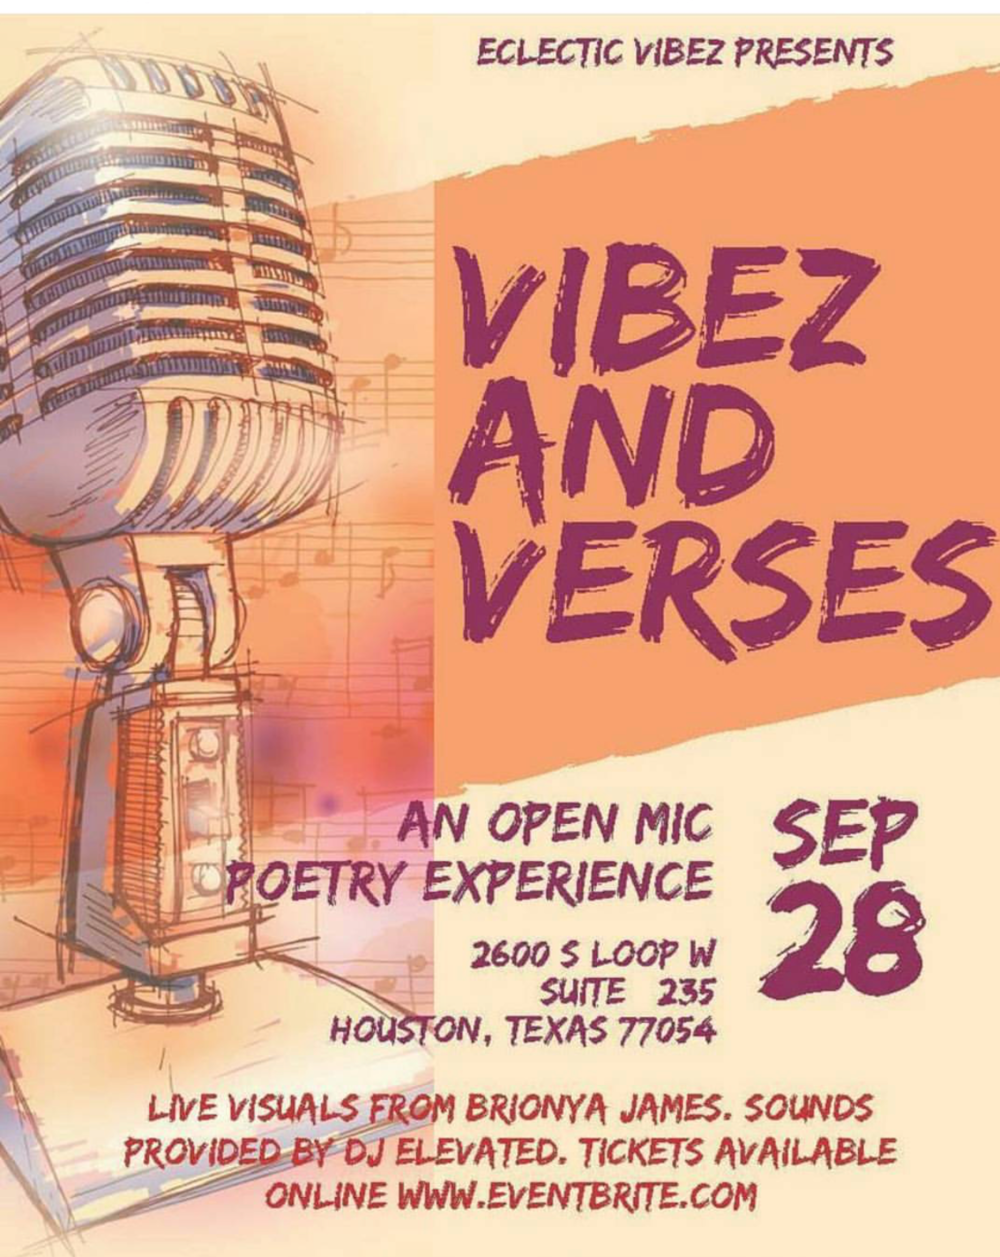 Purchase your tickets here: https://www.eventbrite.com/e/vibez-verses-tickets-37264941443?aff=eac2